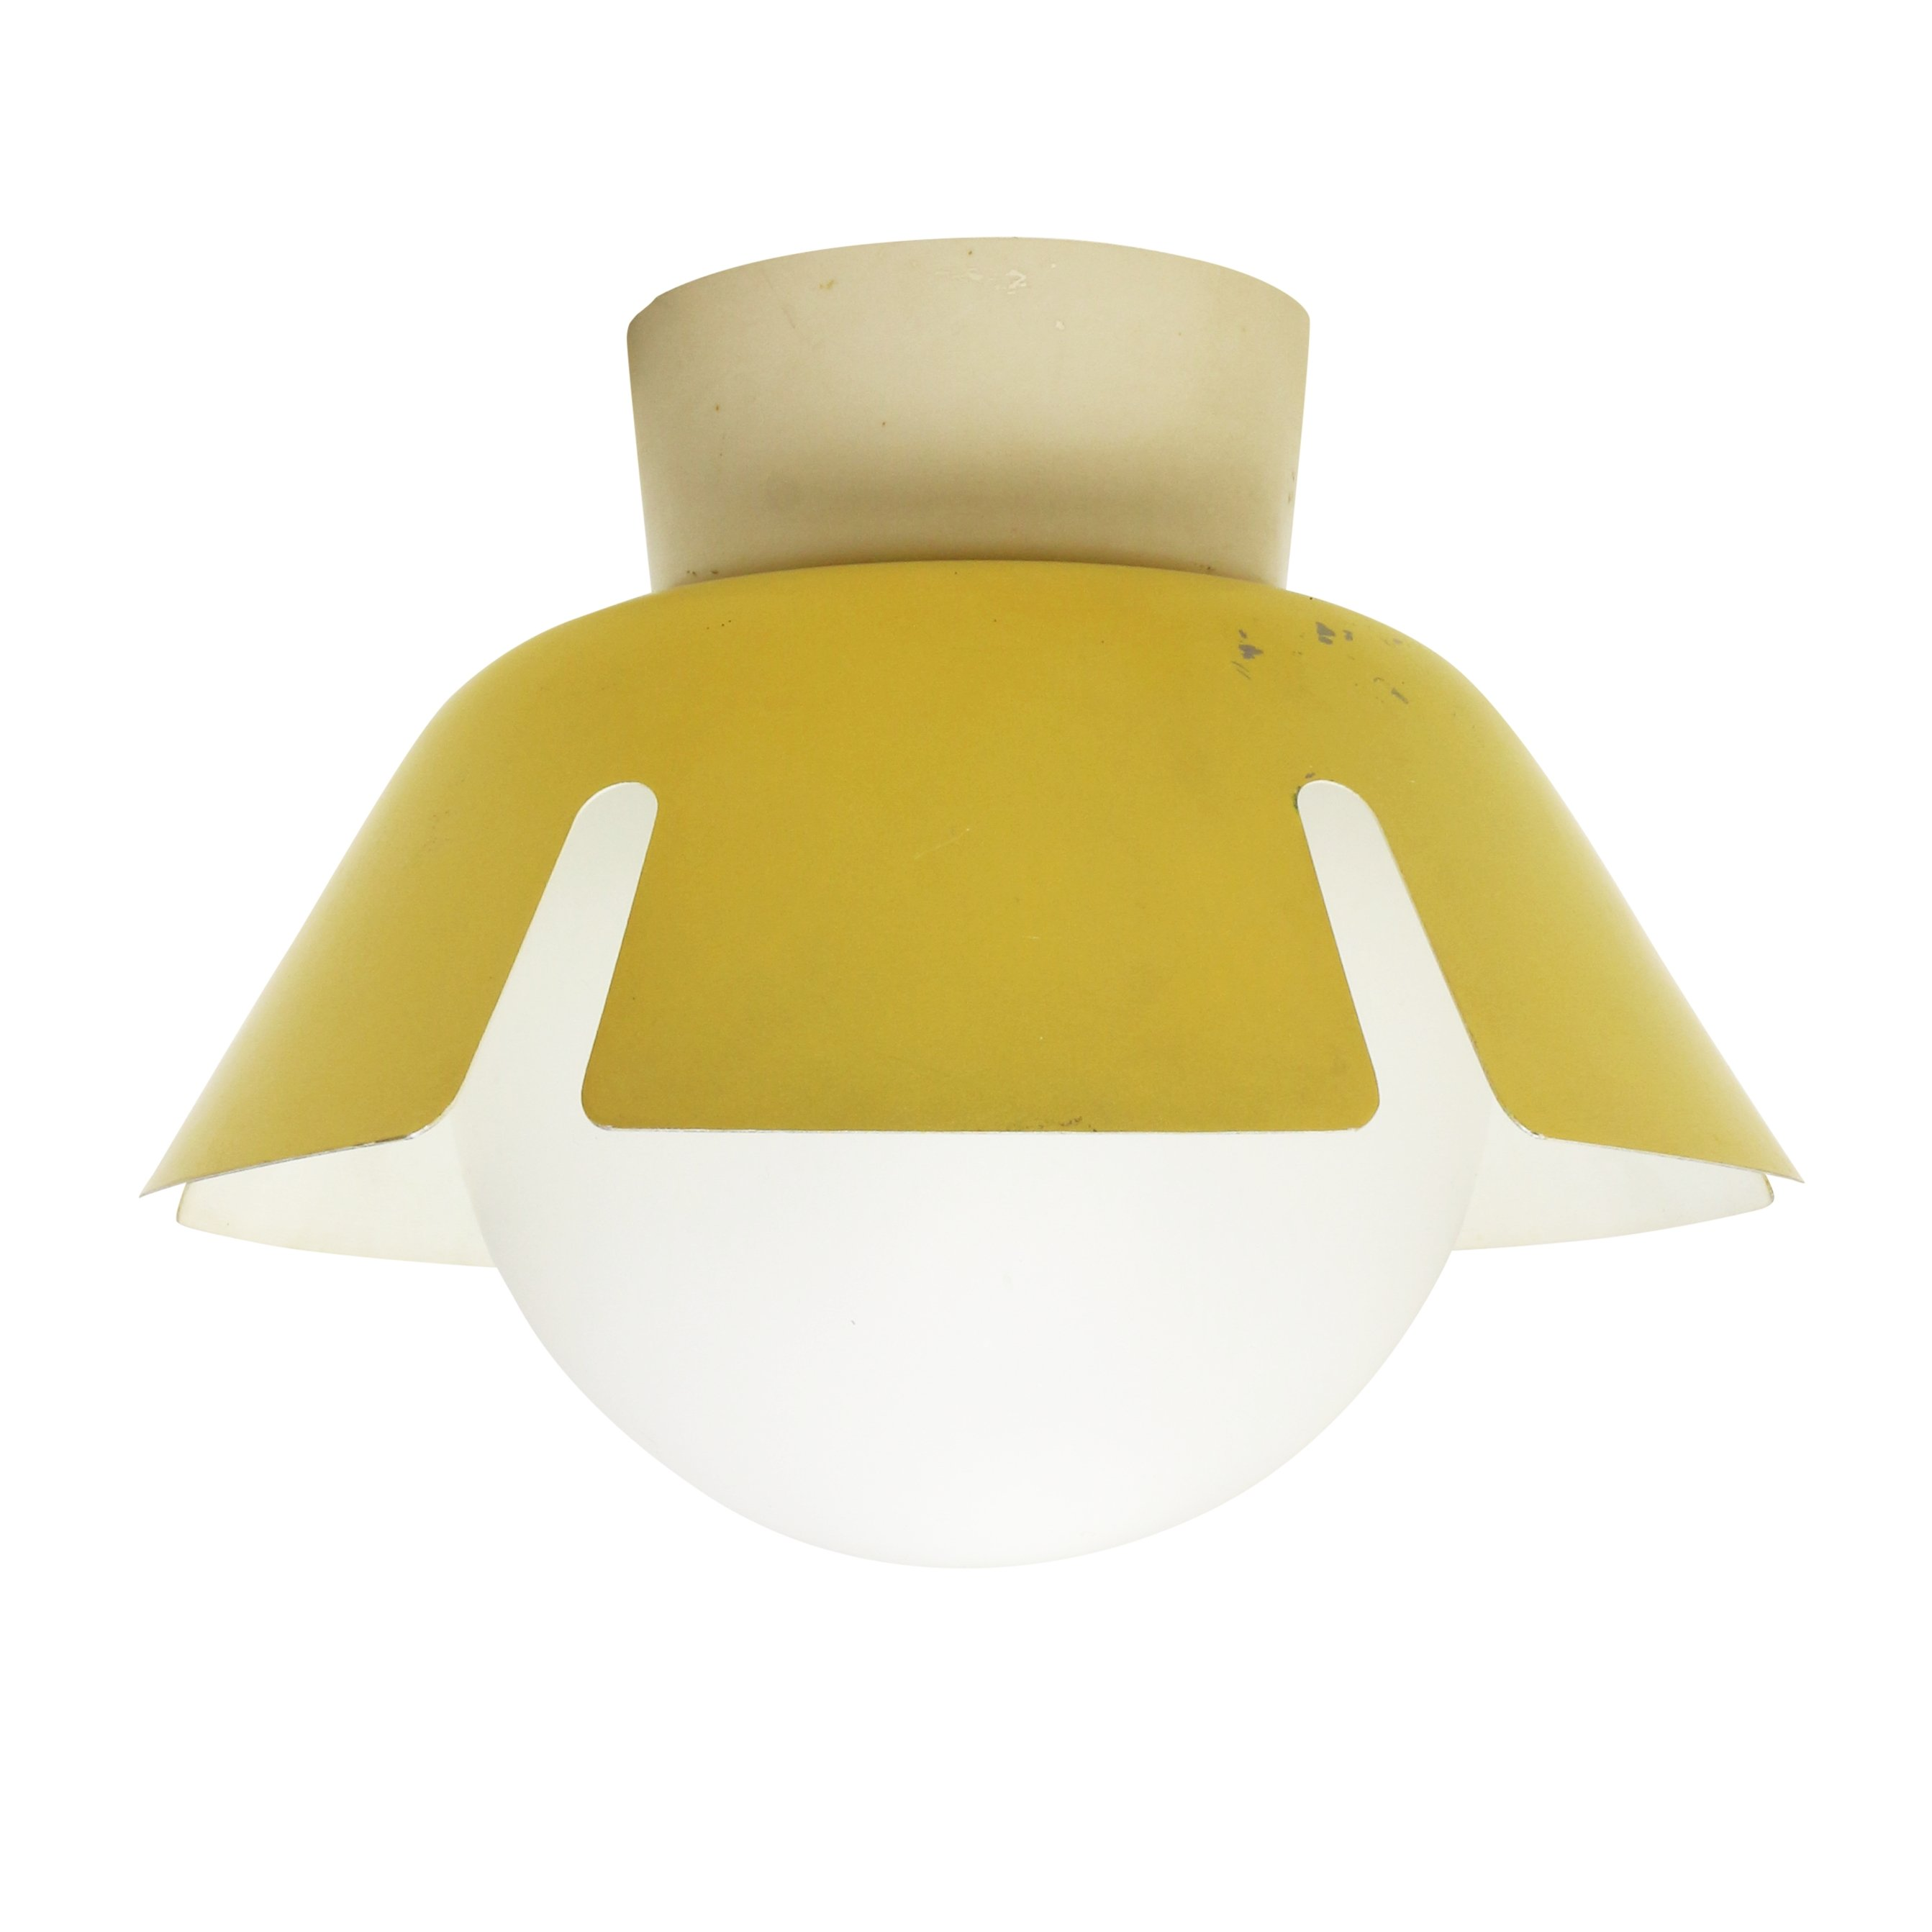 Flower ceiling light in bright yellow with milk glass ball 1960s flower ceiling light in bright yellow with milk glass ball 1960s arubaitofo Gallery